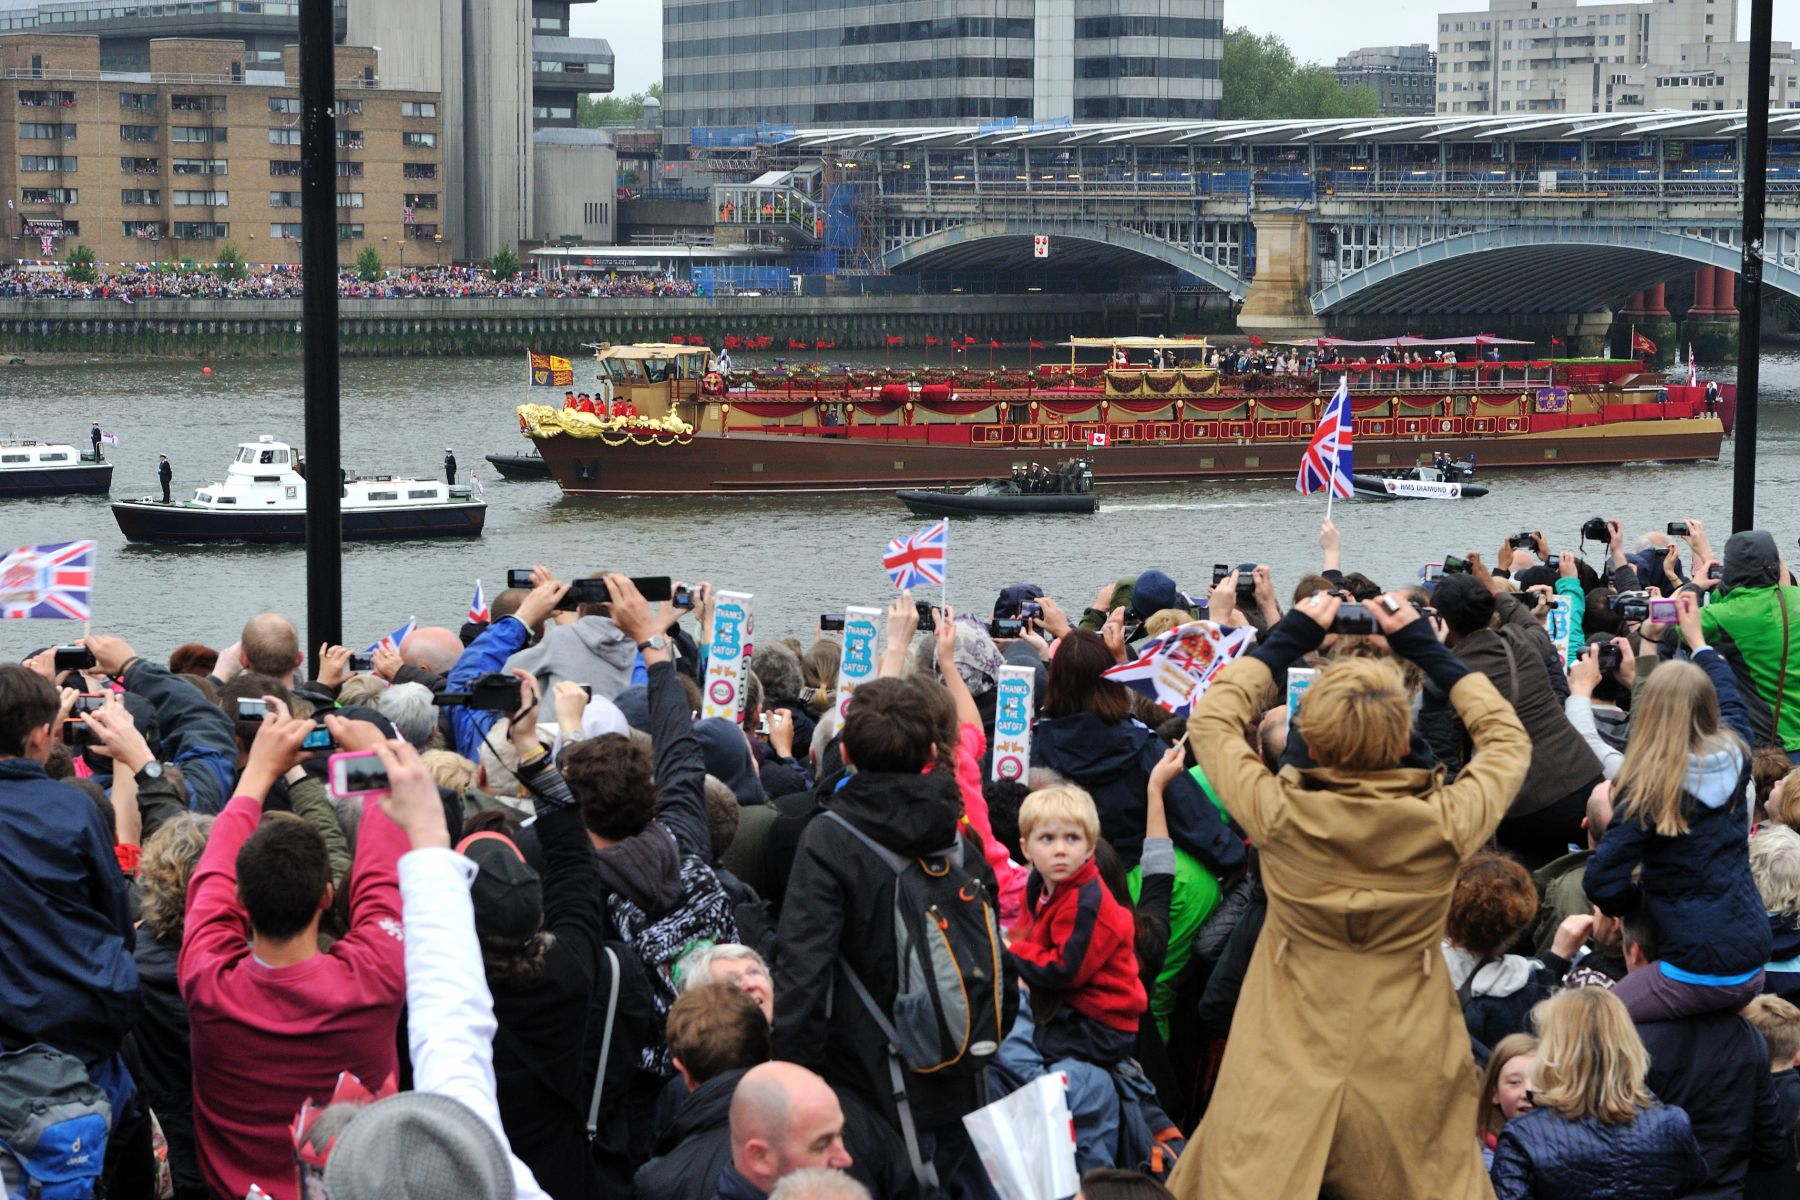 The Queen and The Duke of Edinburgh traveled in the Royal Barge (in red), which formed the centrepiece of the flotilla. Their Excellencies embarked on a Royal Squadron vessel.